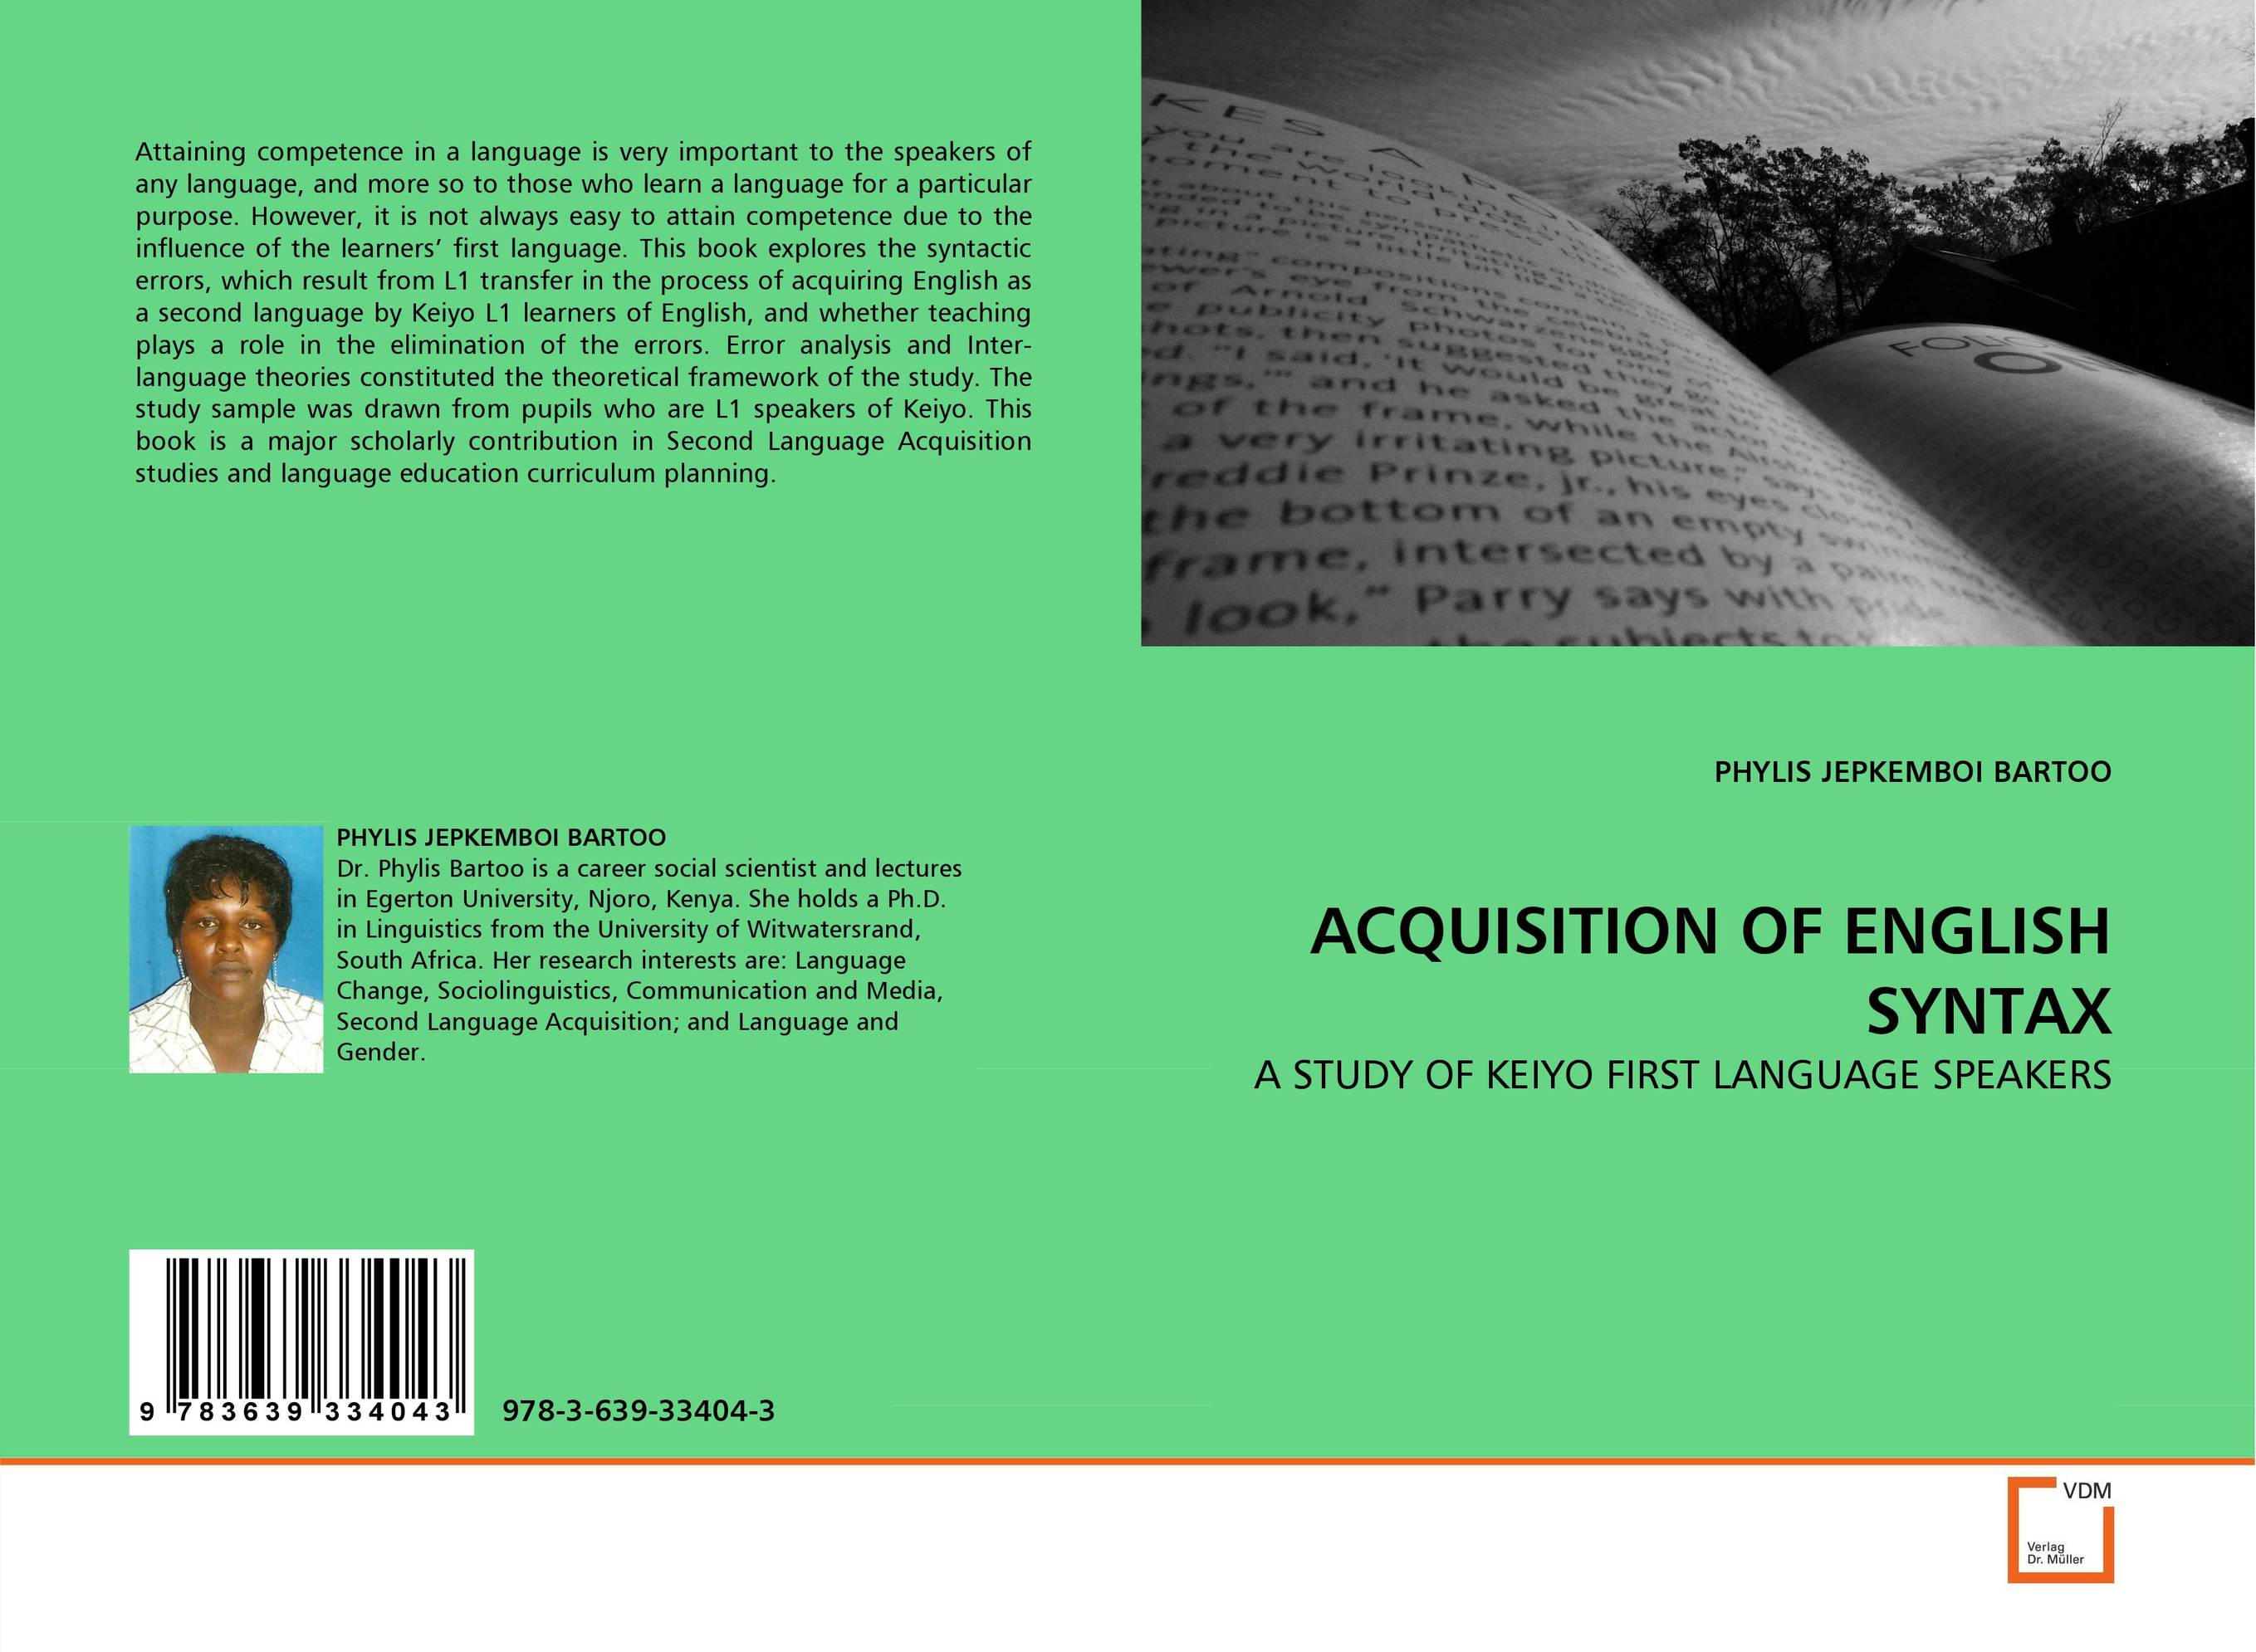 ACQUISITION OF ENGLISH SYNTAX language assessment in secondary english curriculum in bangladesh